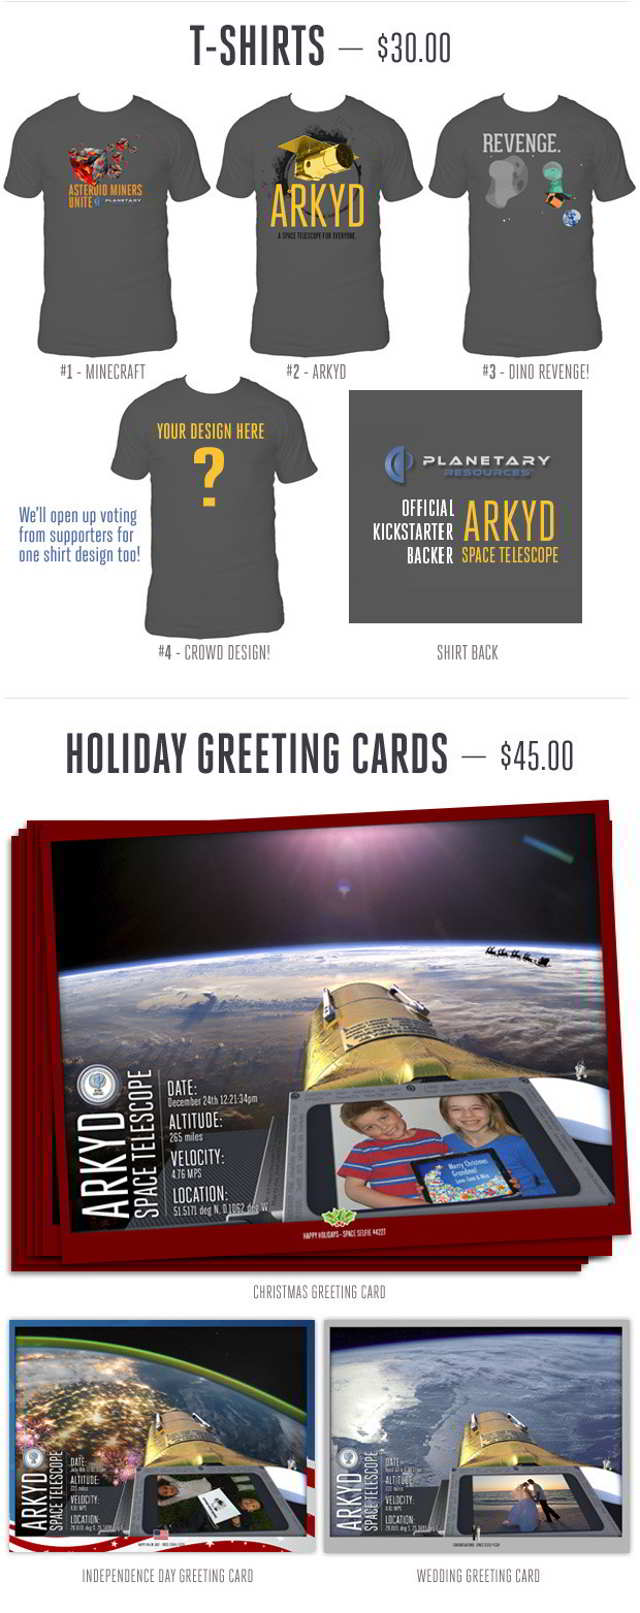 ARKYD- A Space Telescope for Everyone (1)